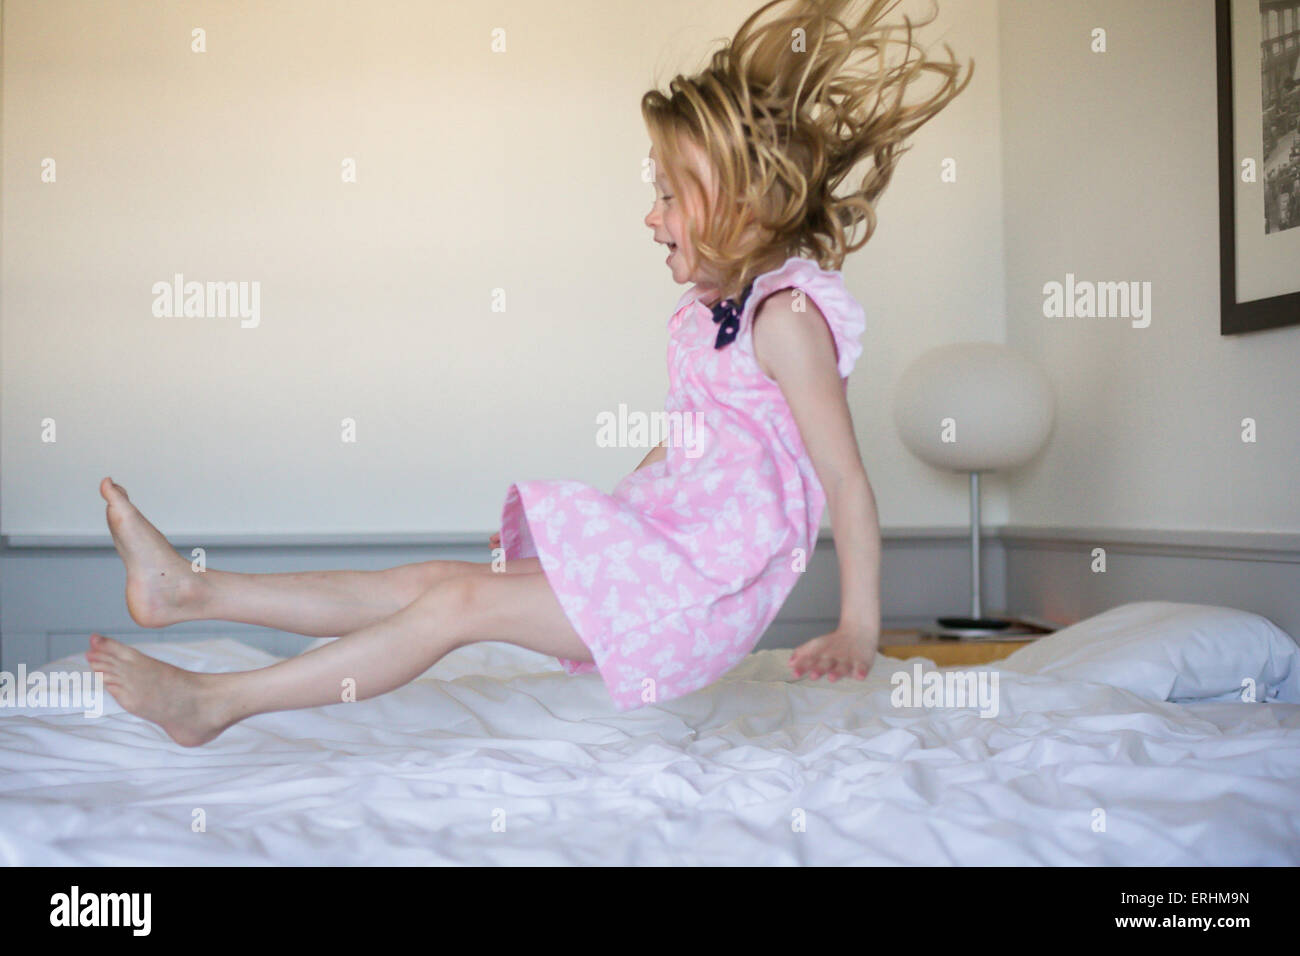 Girl bouncing on her bed - Stock Image